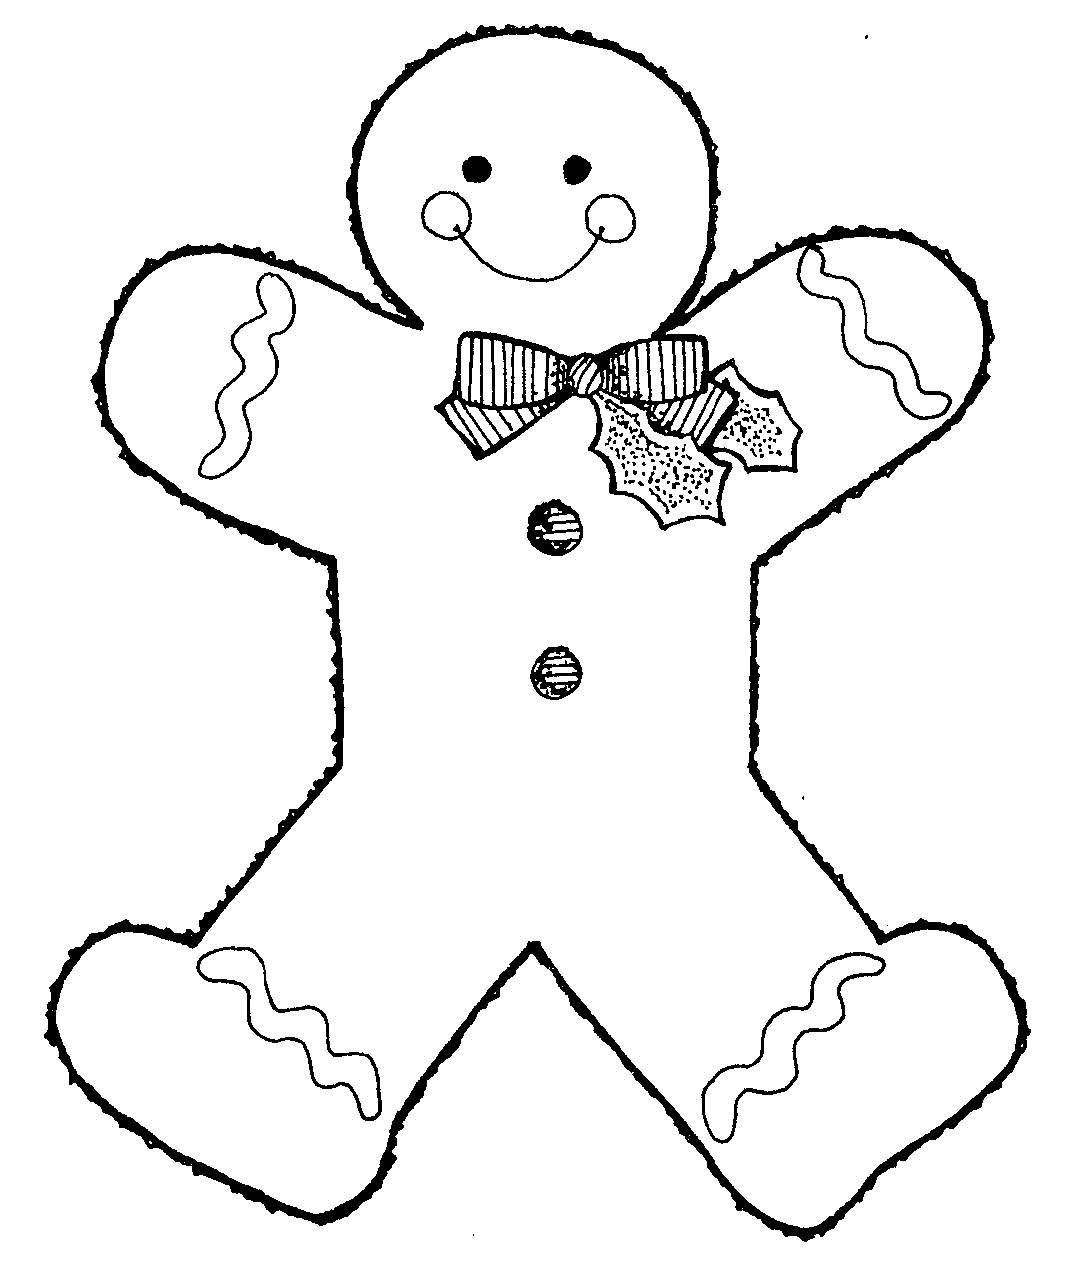 gingerbread outline printable free printable gingerbread man coloring pages for kids printable outline gingerbread 1 1